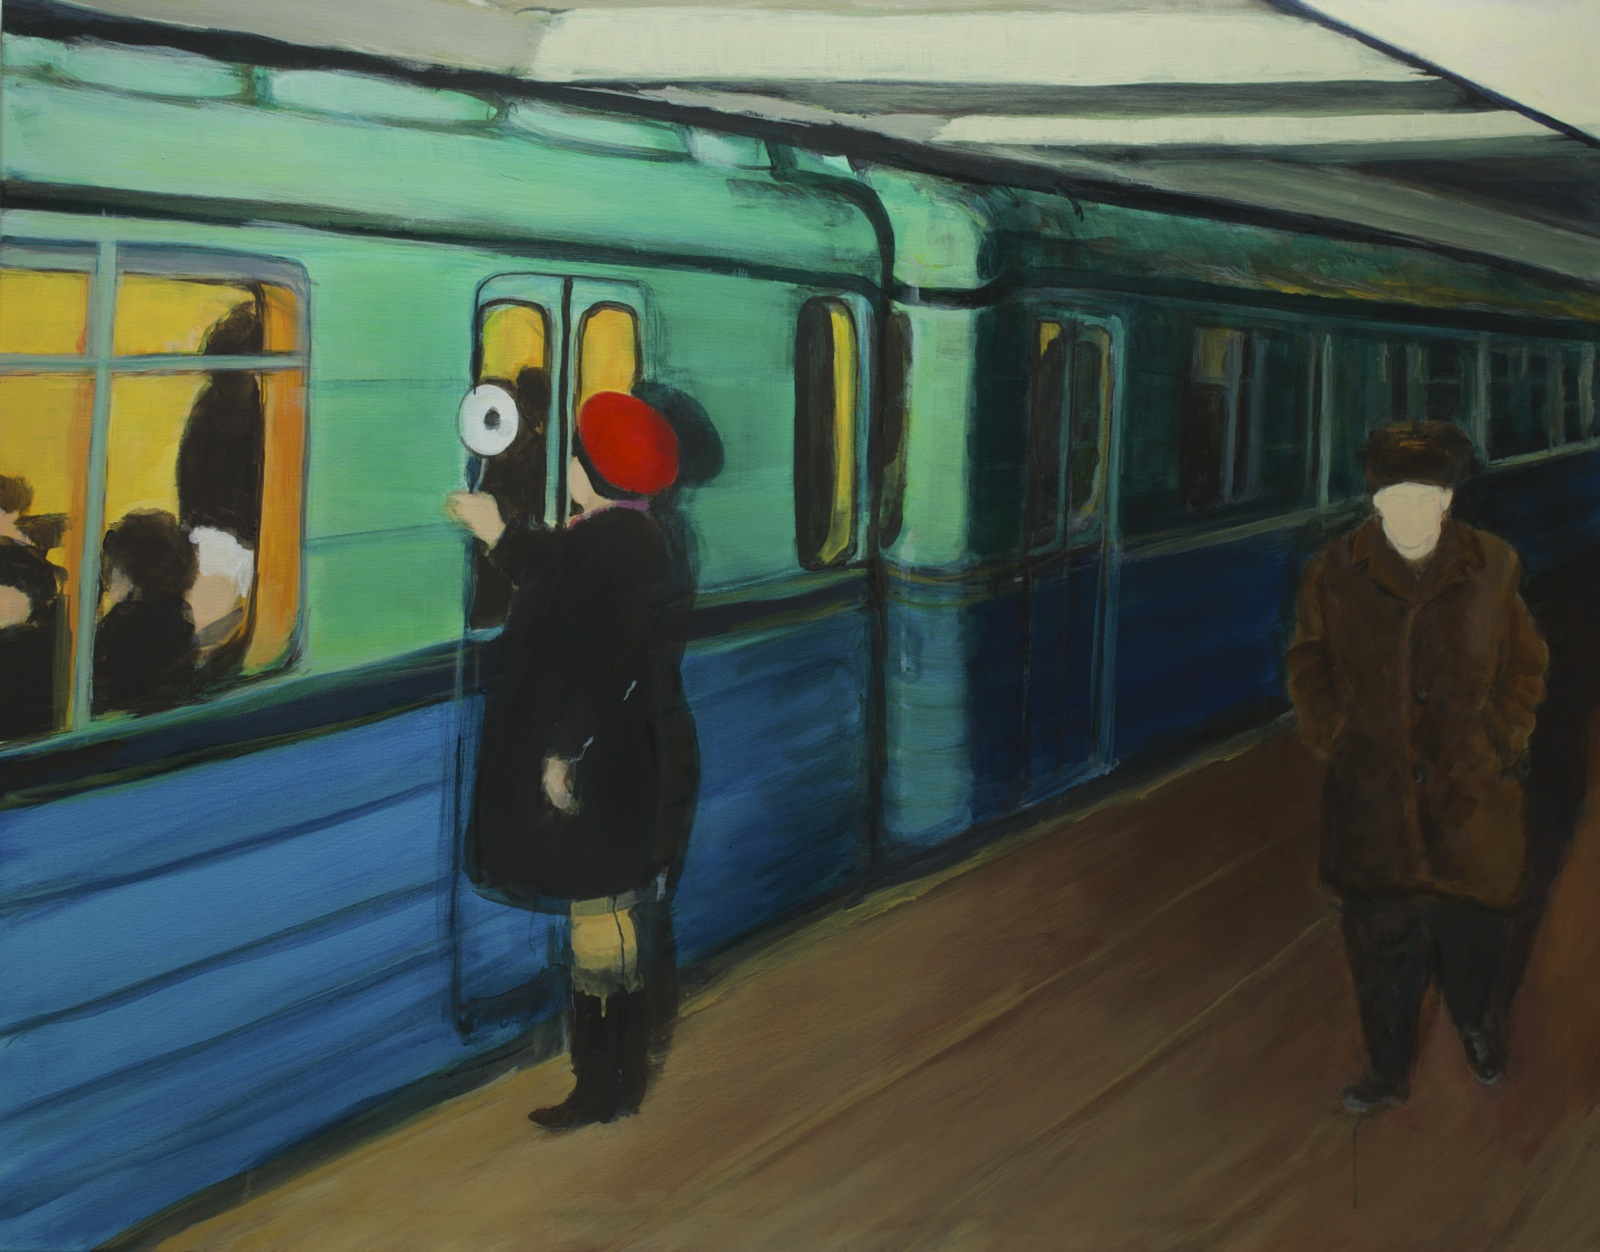 Followed in Moscow underground 1980, 110 cm x 140 cm, acrylic on canvas, 2020